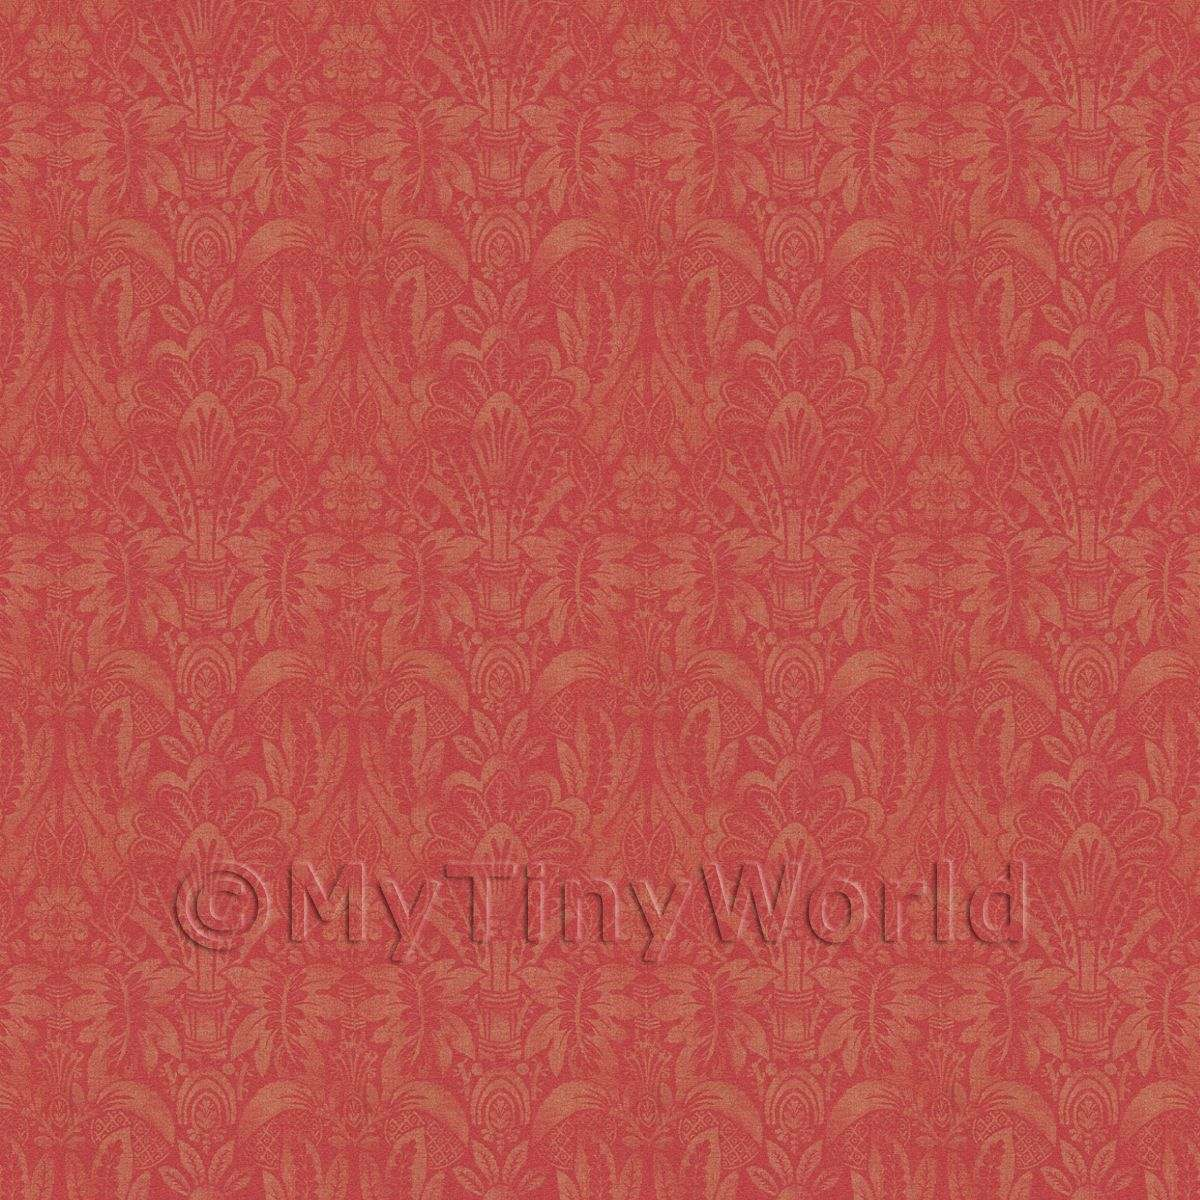 Dolls House Miniature Intricate Pale Gold On Red Wallpaper